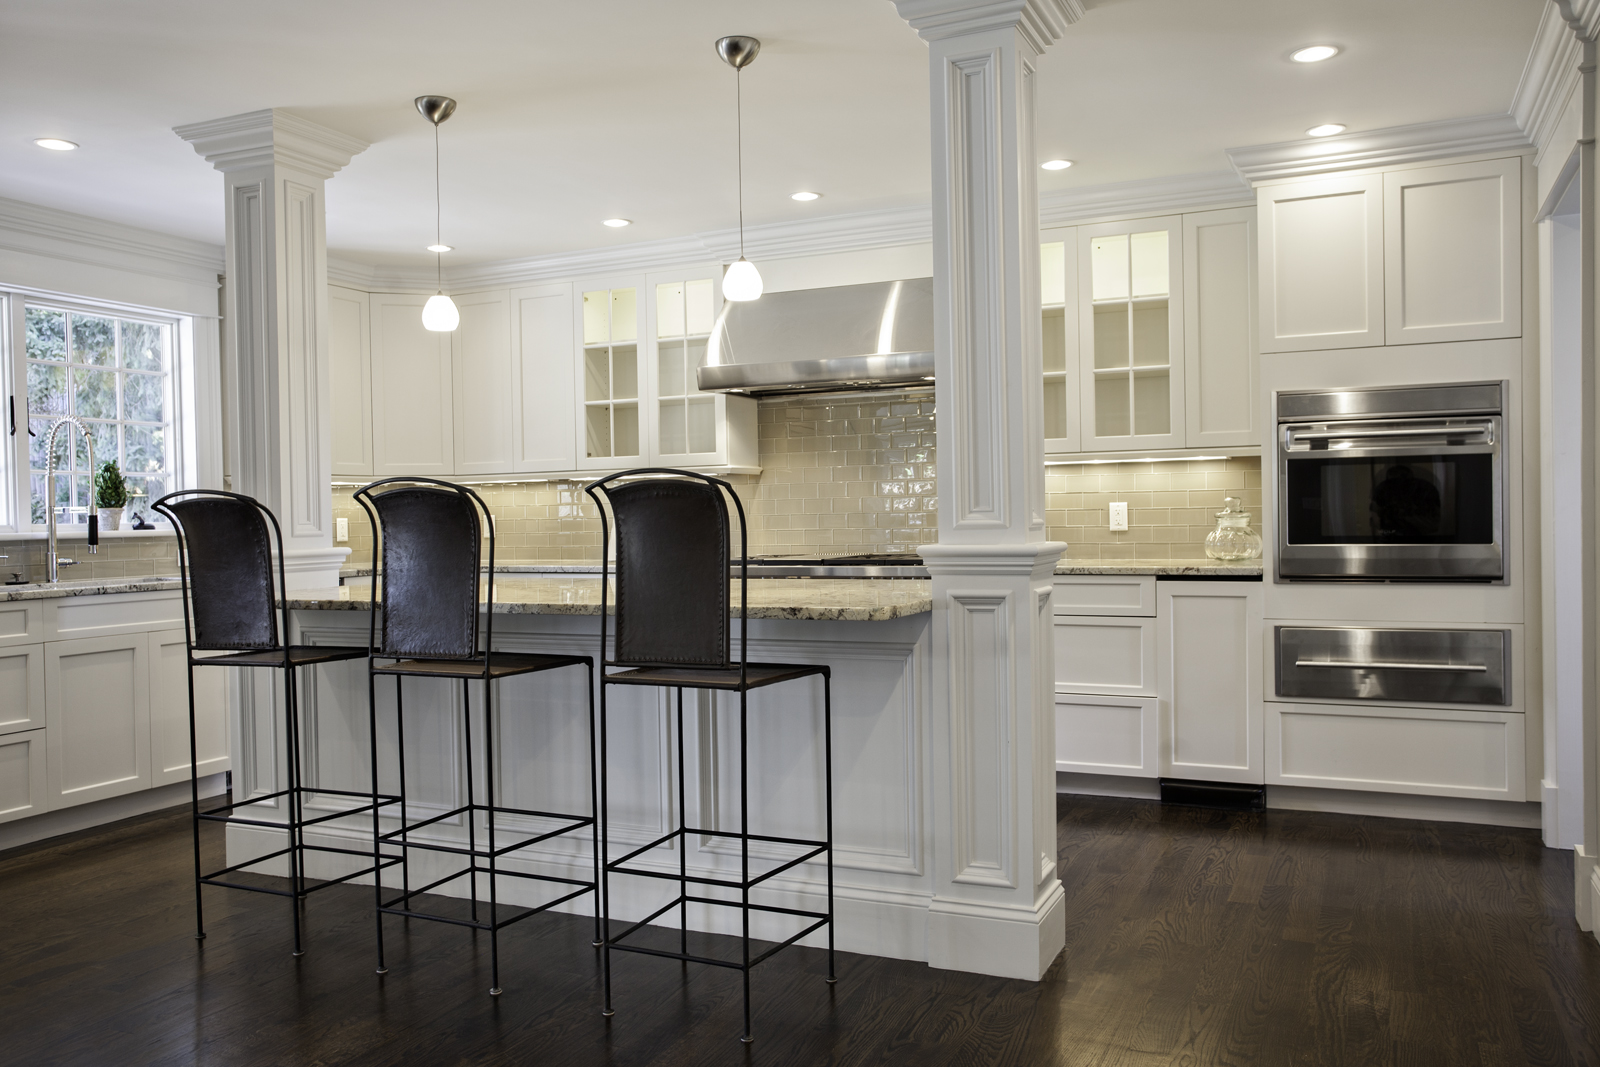 Kitchen Design And Remodeling Gallery - Kitchen And Bath Design Center And Remodeling